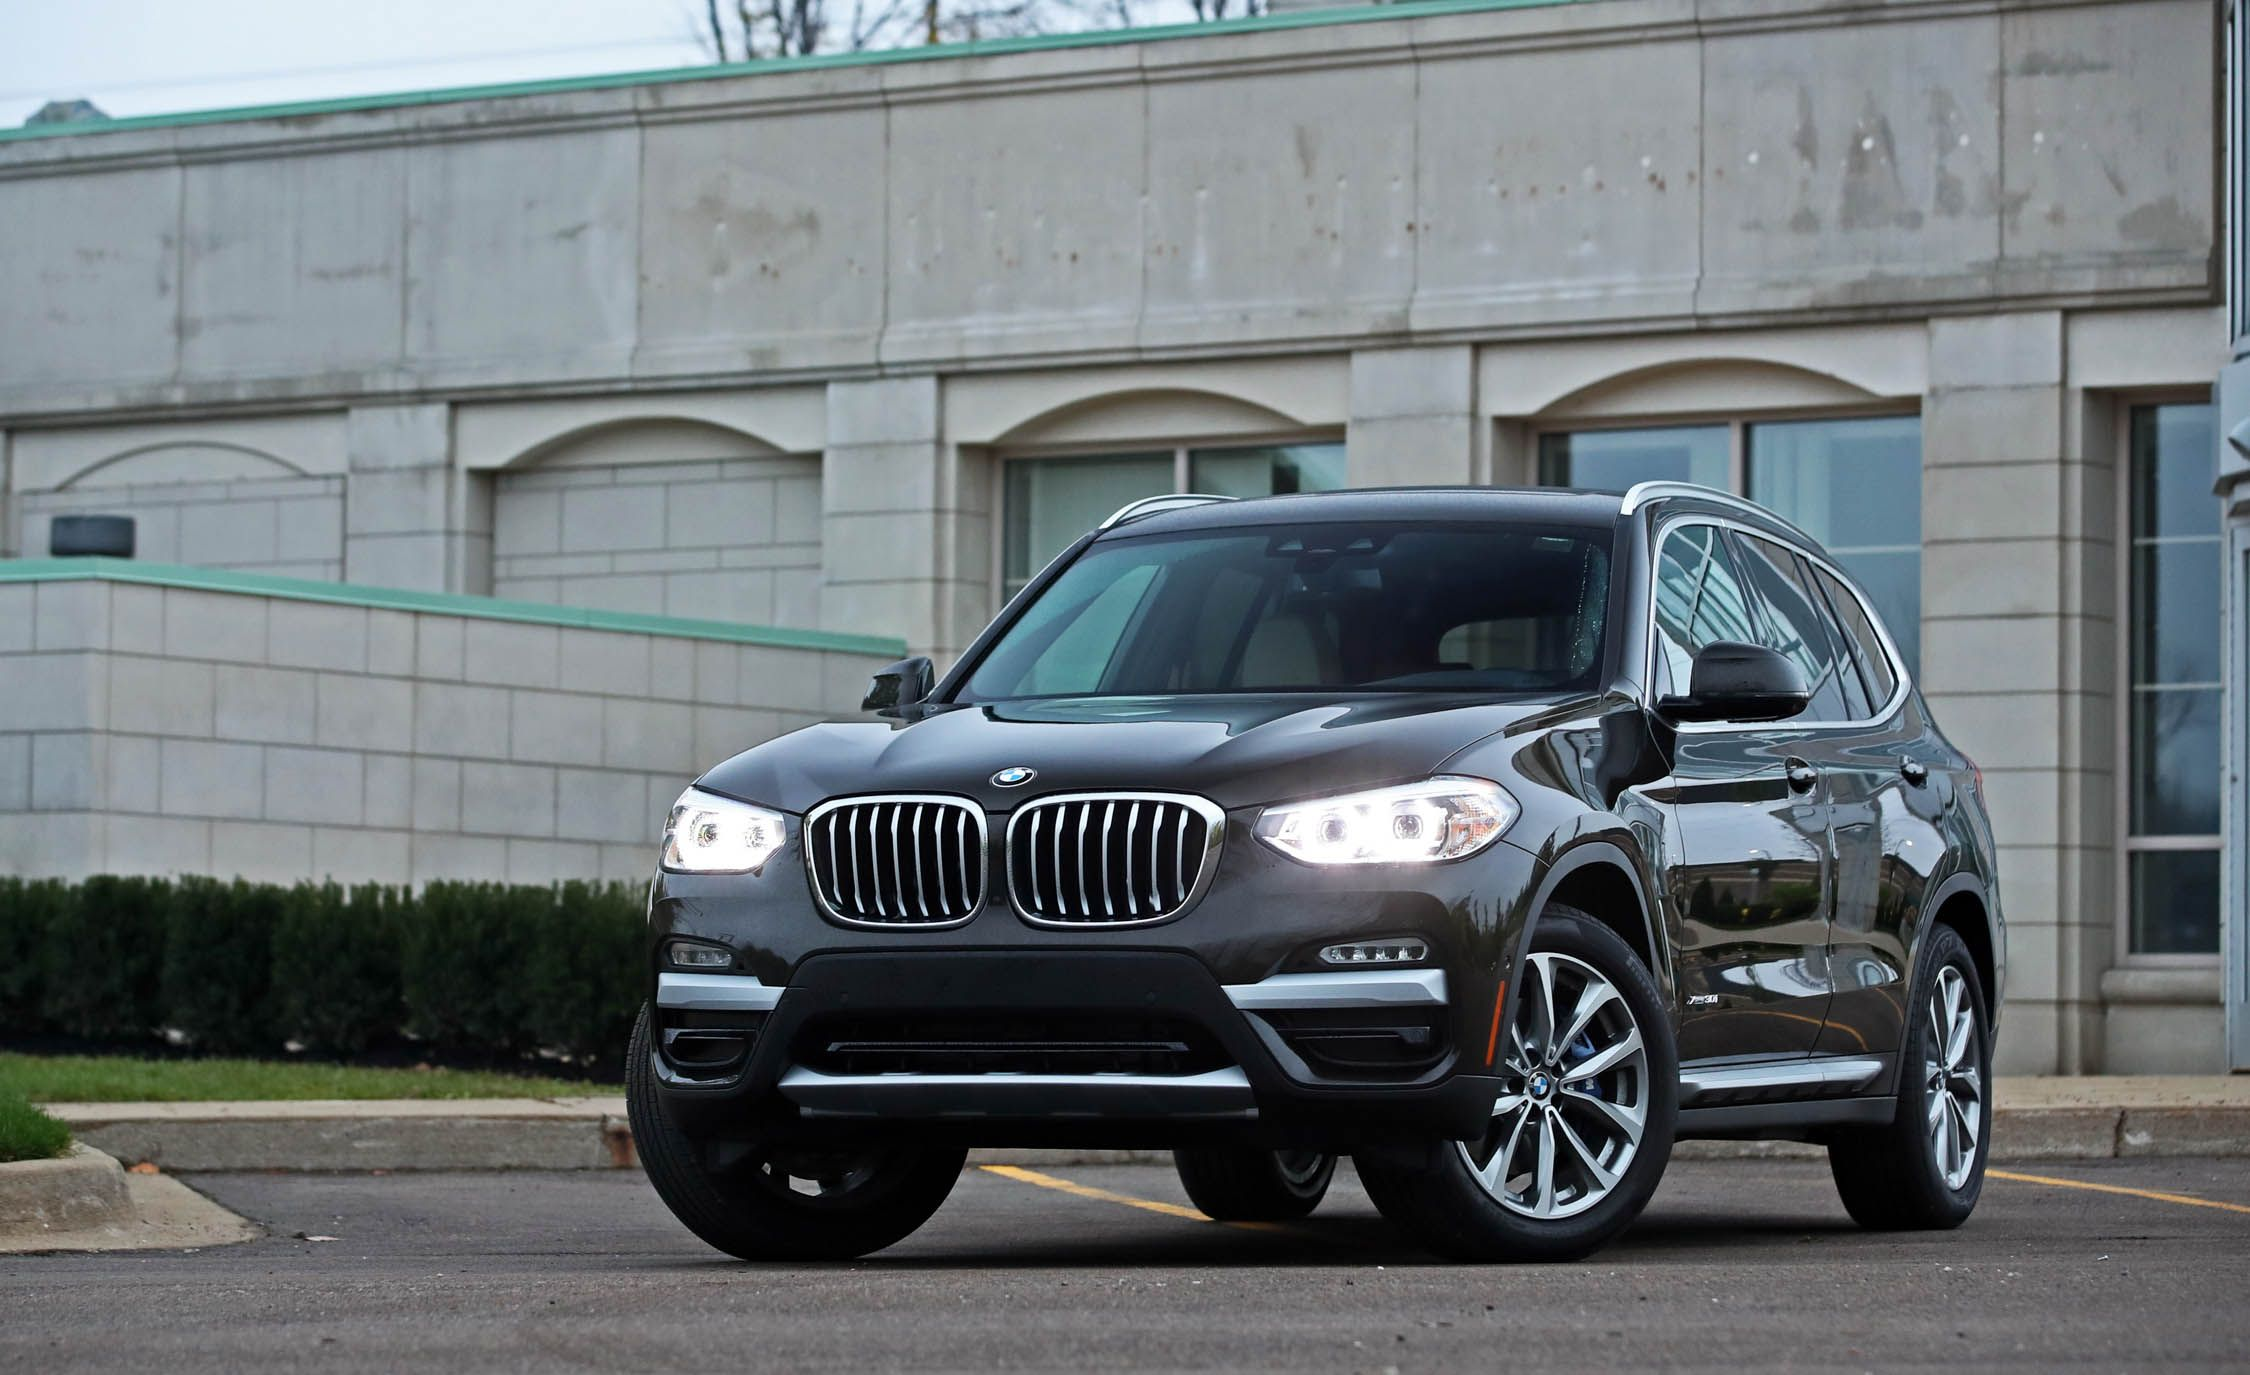 2019 Bmw X3 Reviews Bmw X3 Price Photos And Specs Car And Driver